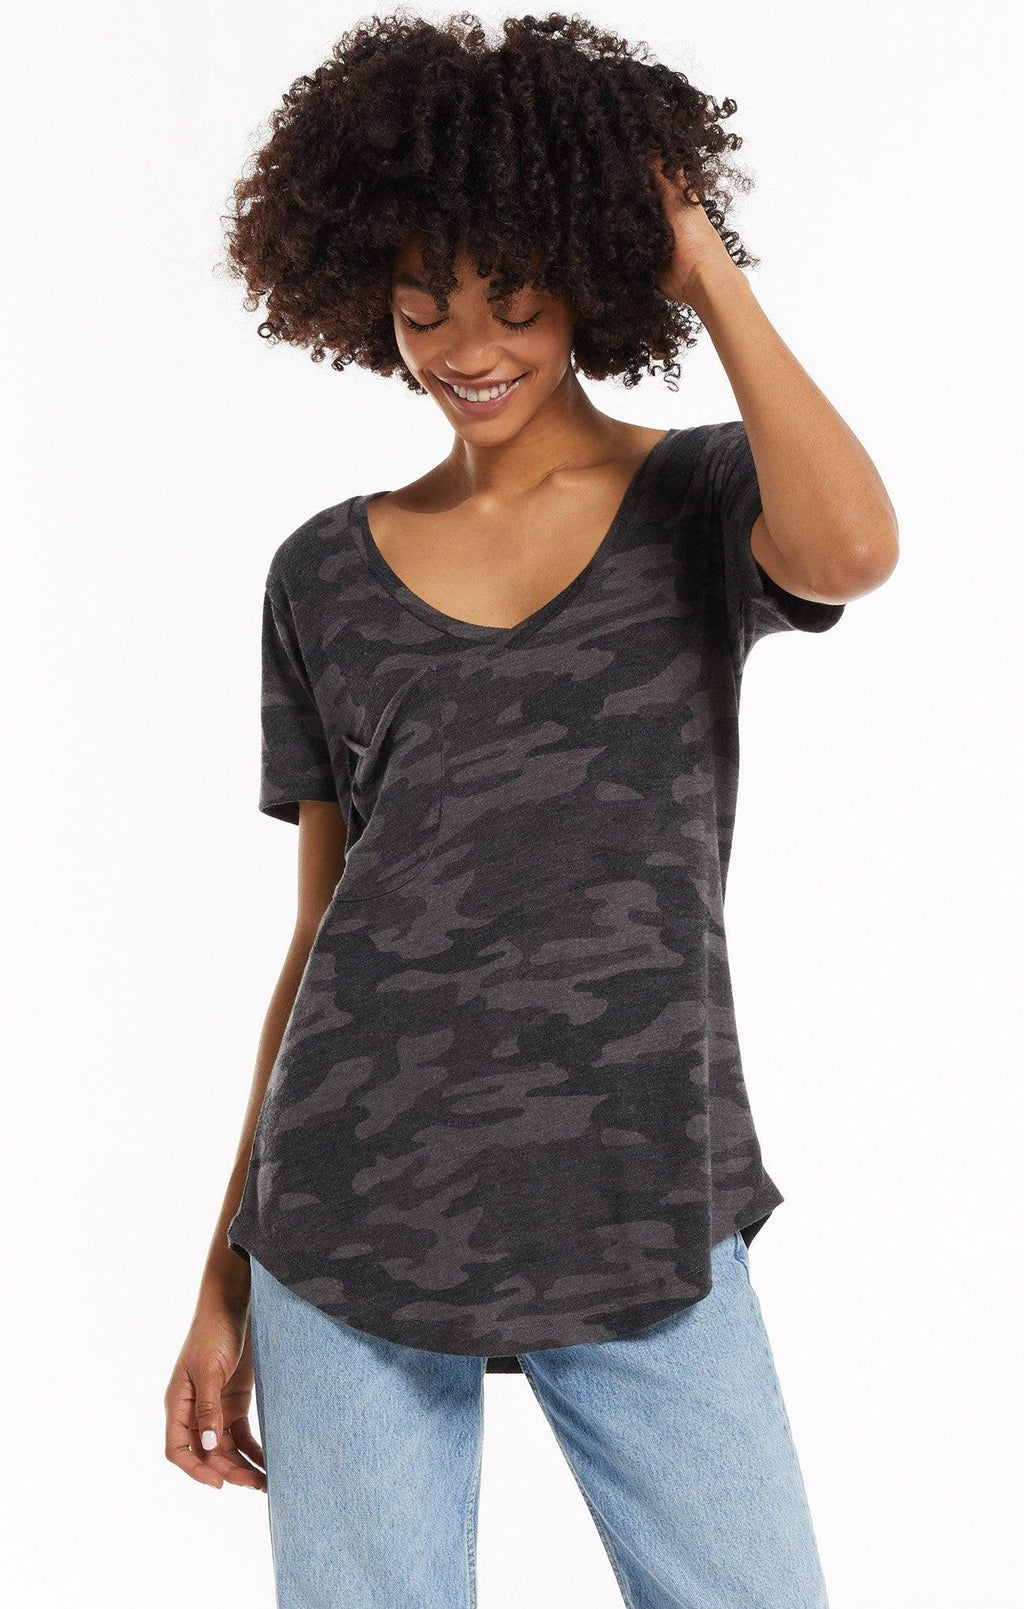 Z Supply Camo Pocket Tee - Camo Charcoal